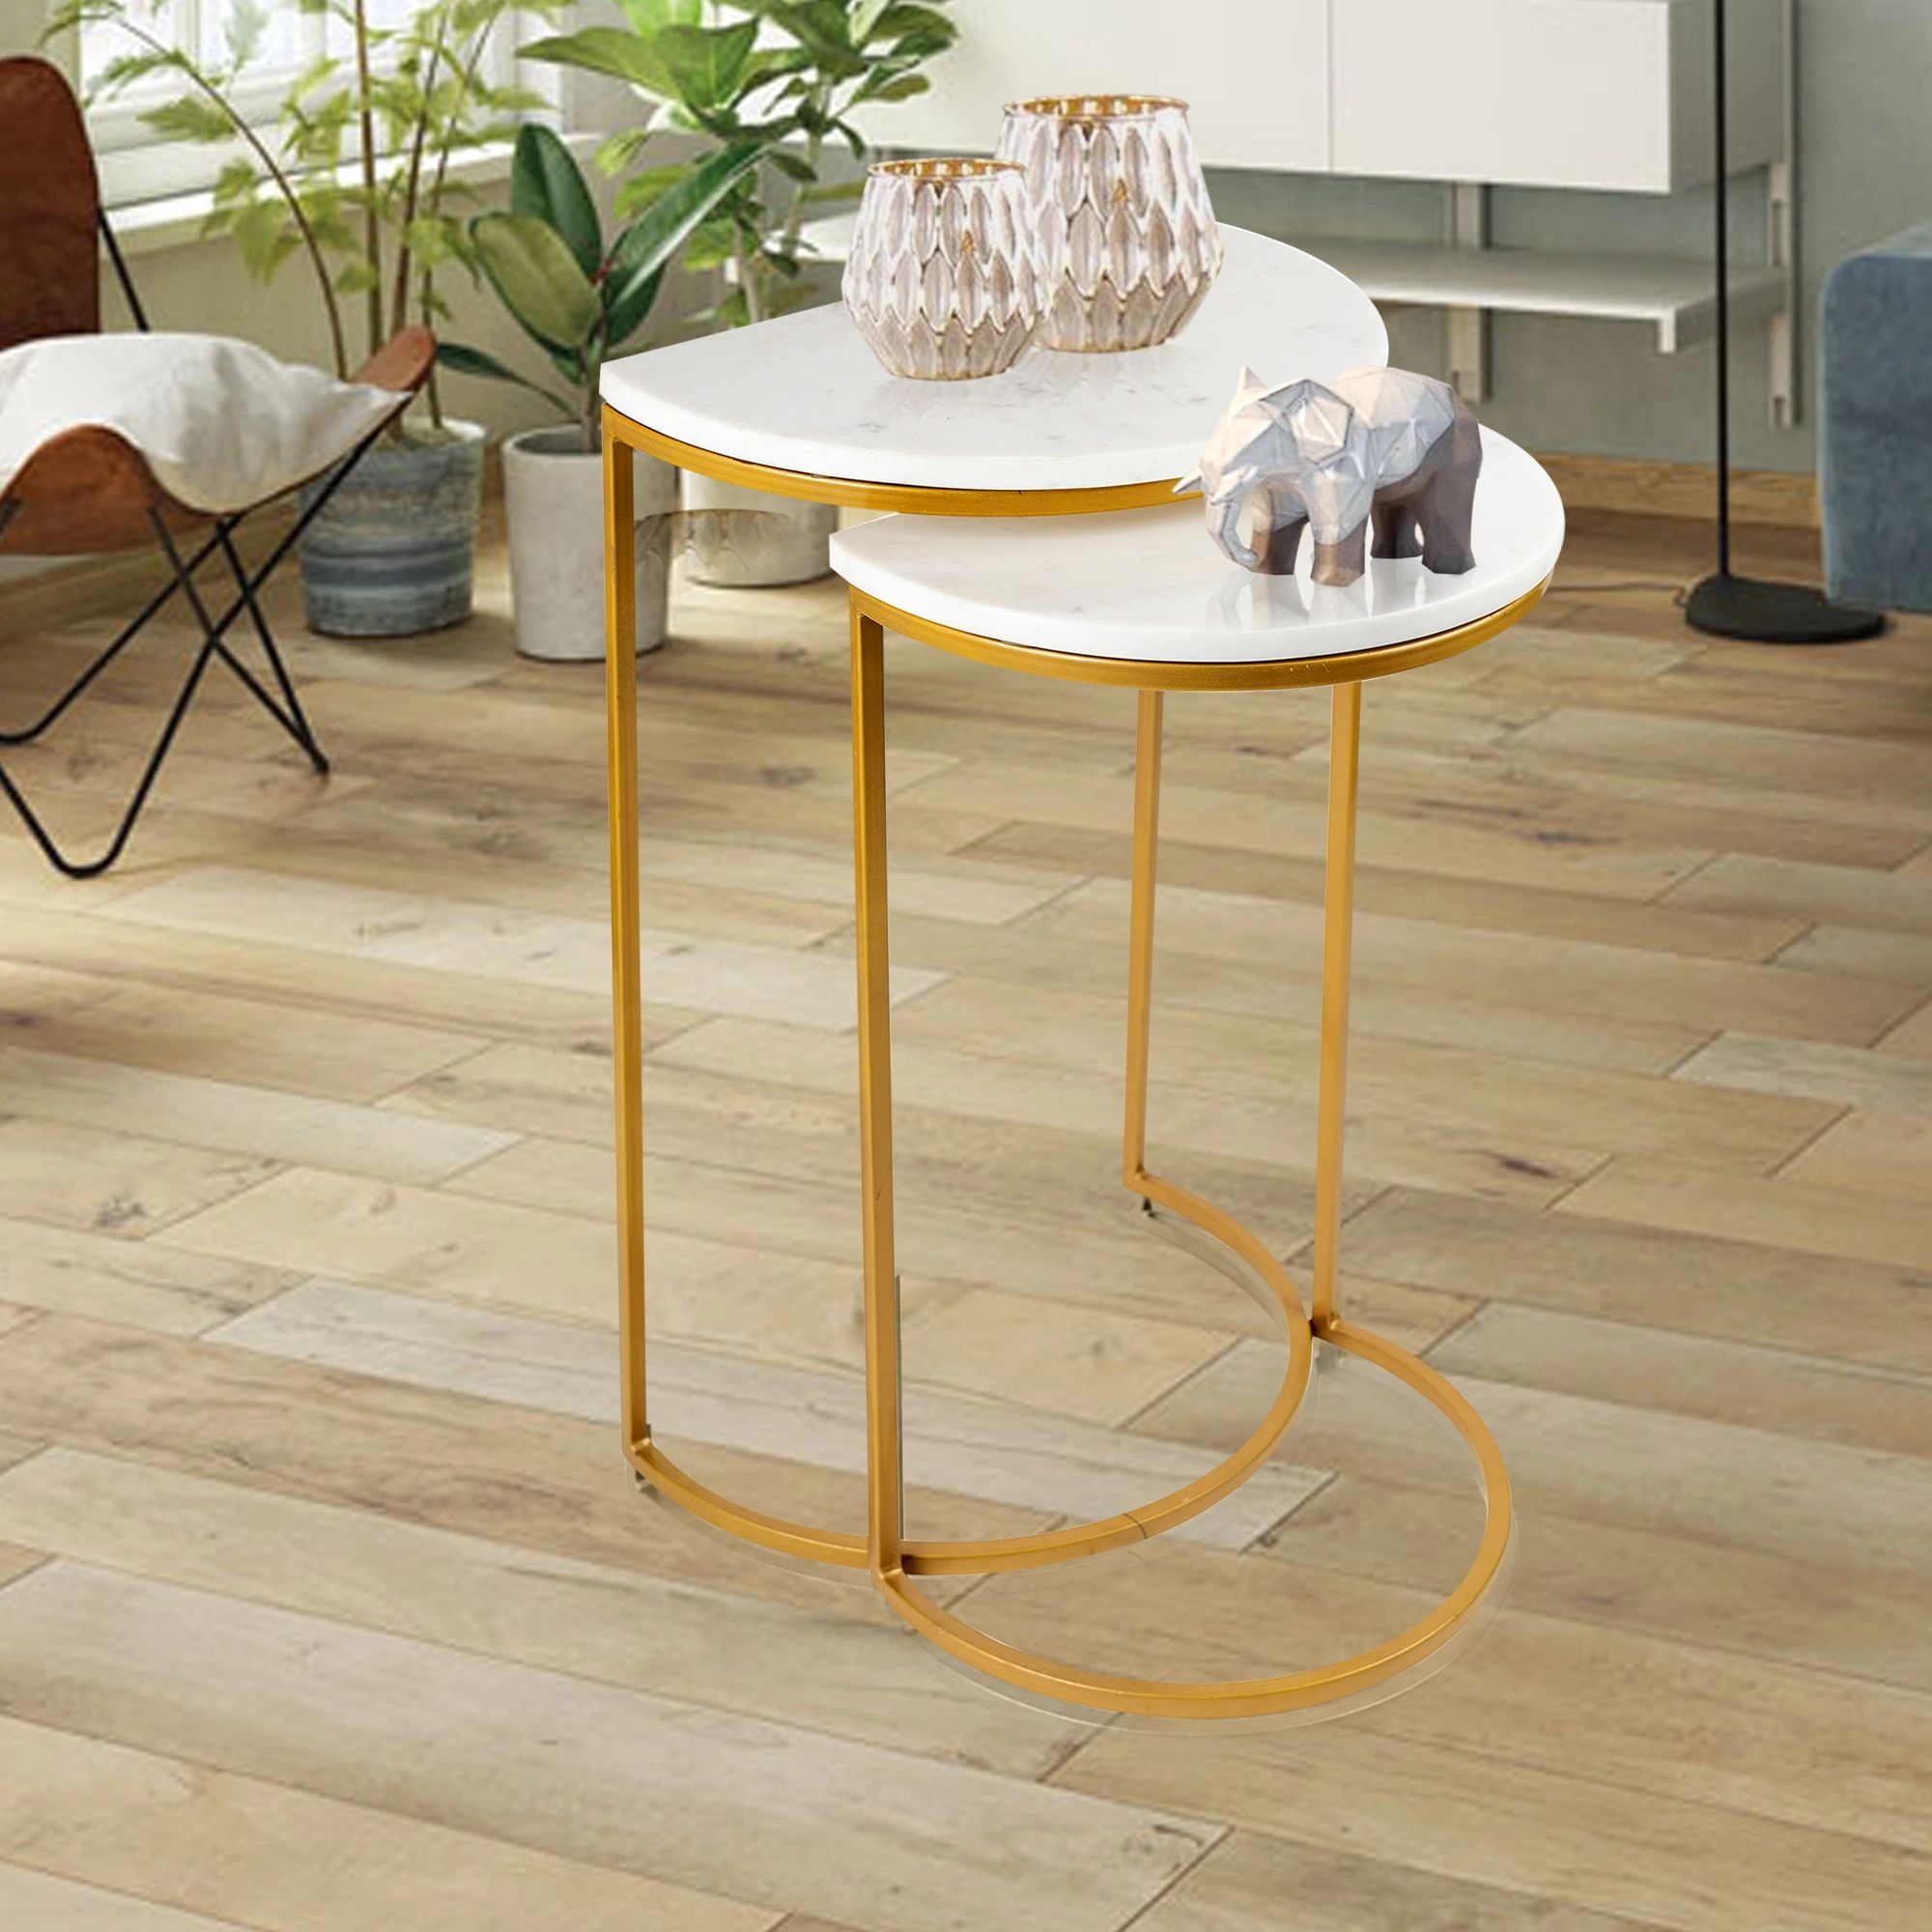 SU-178 WHT- Side Table- Gold p/coat w/ white marble